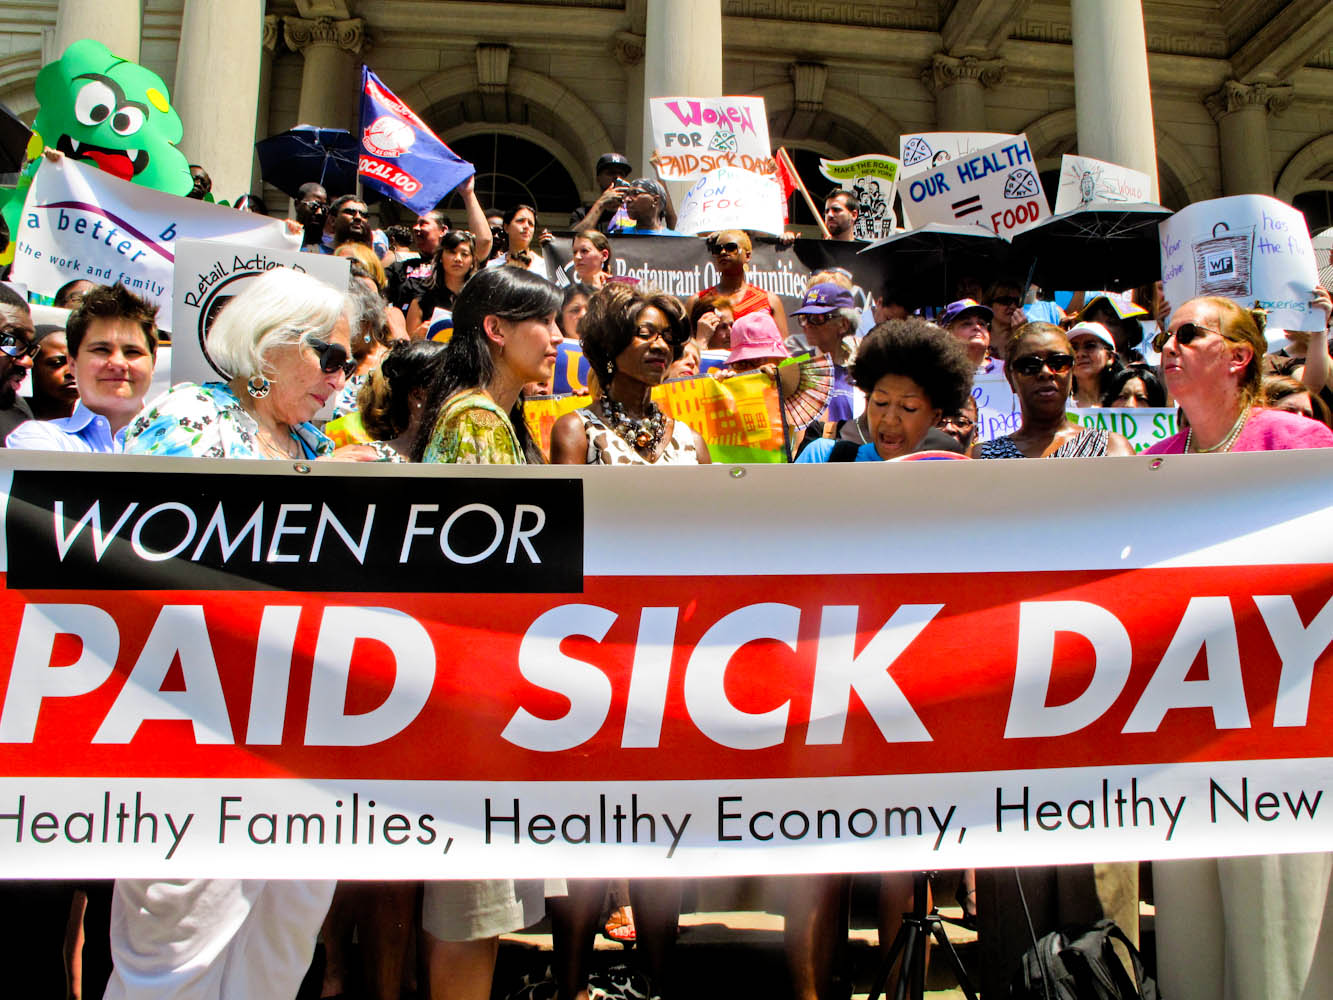 Women for Paid Sick Days sign and protestors